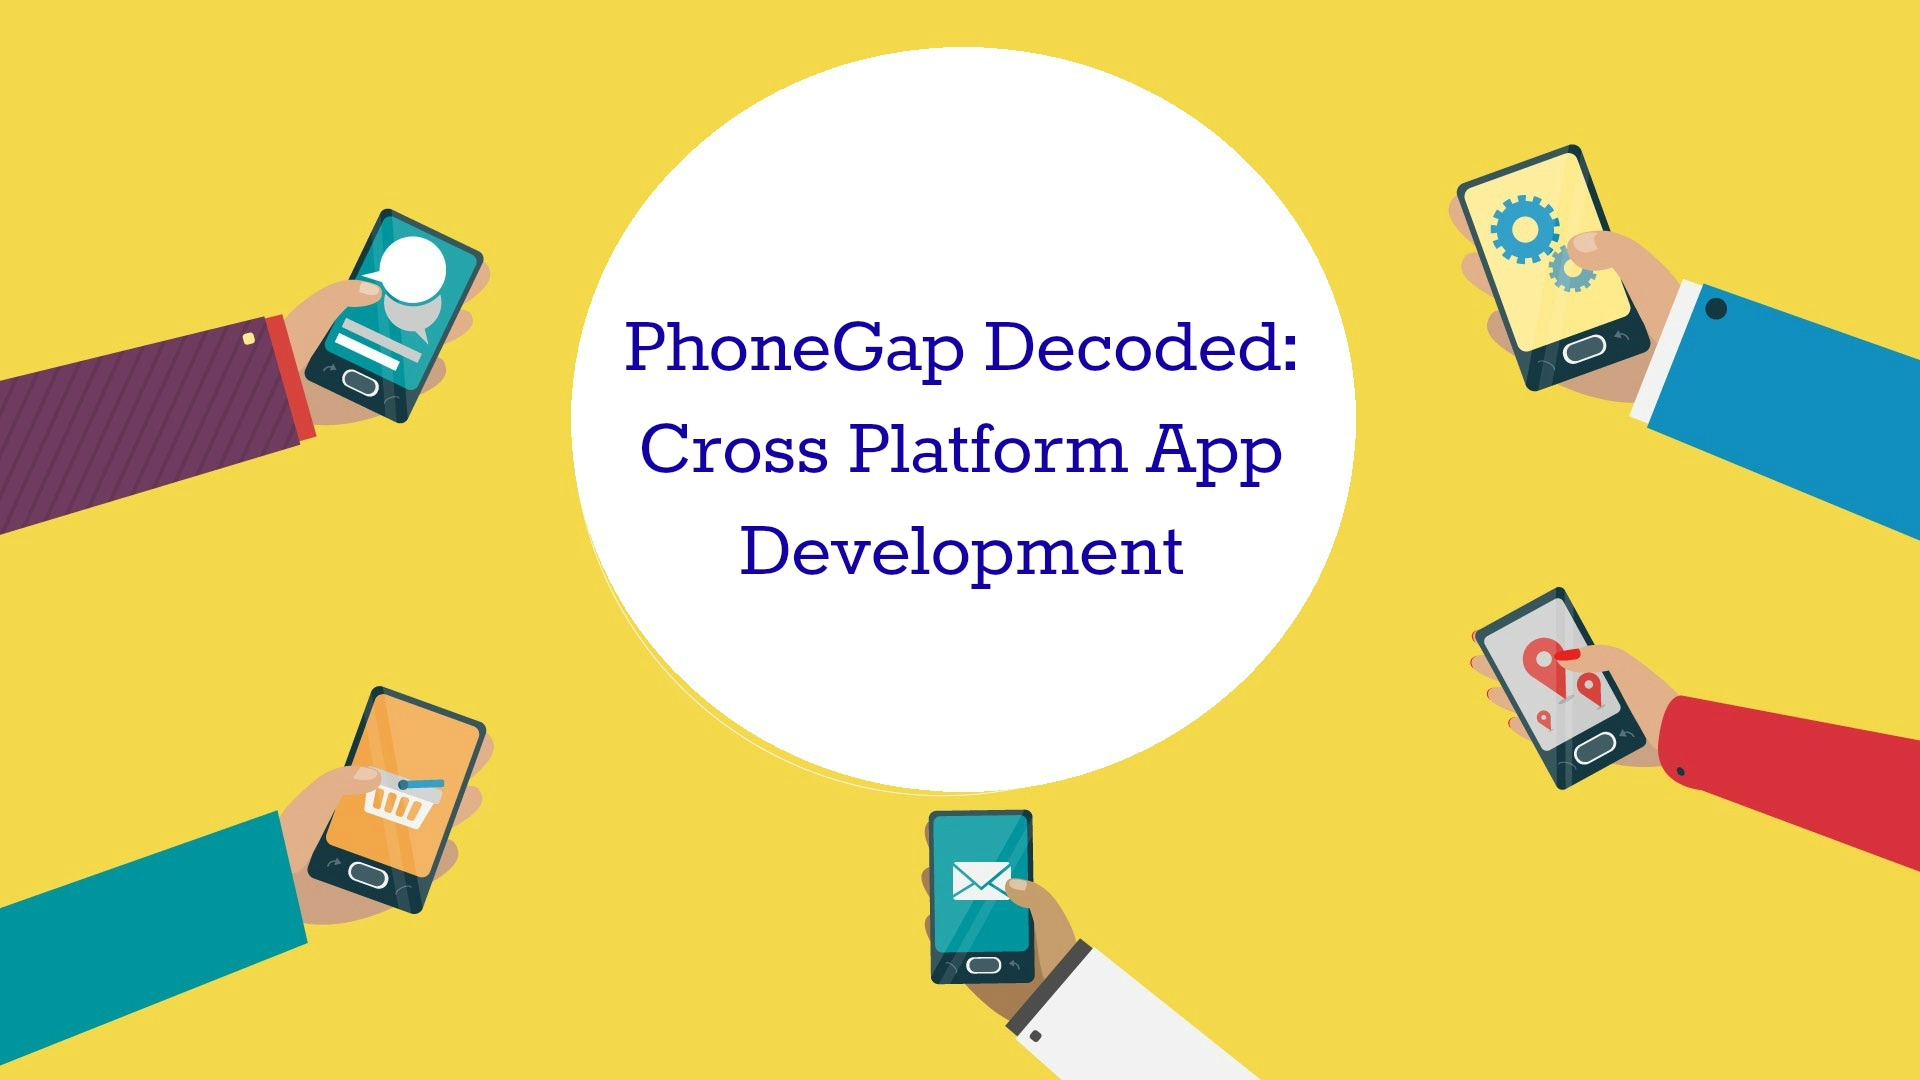 PhoneGap Cross Platform App Development